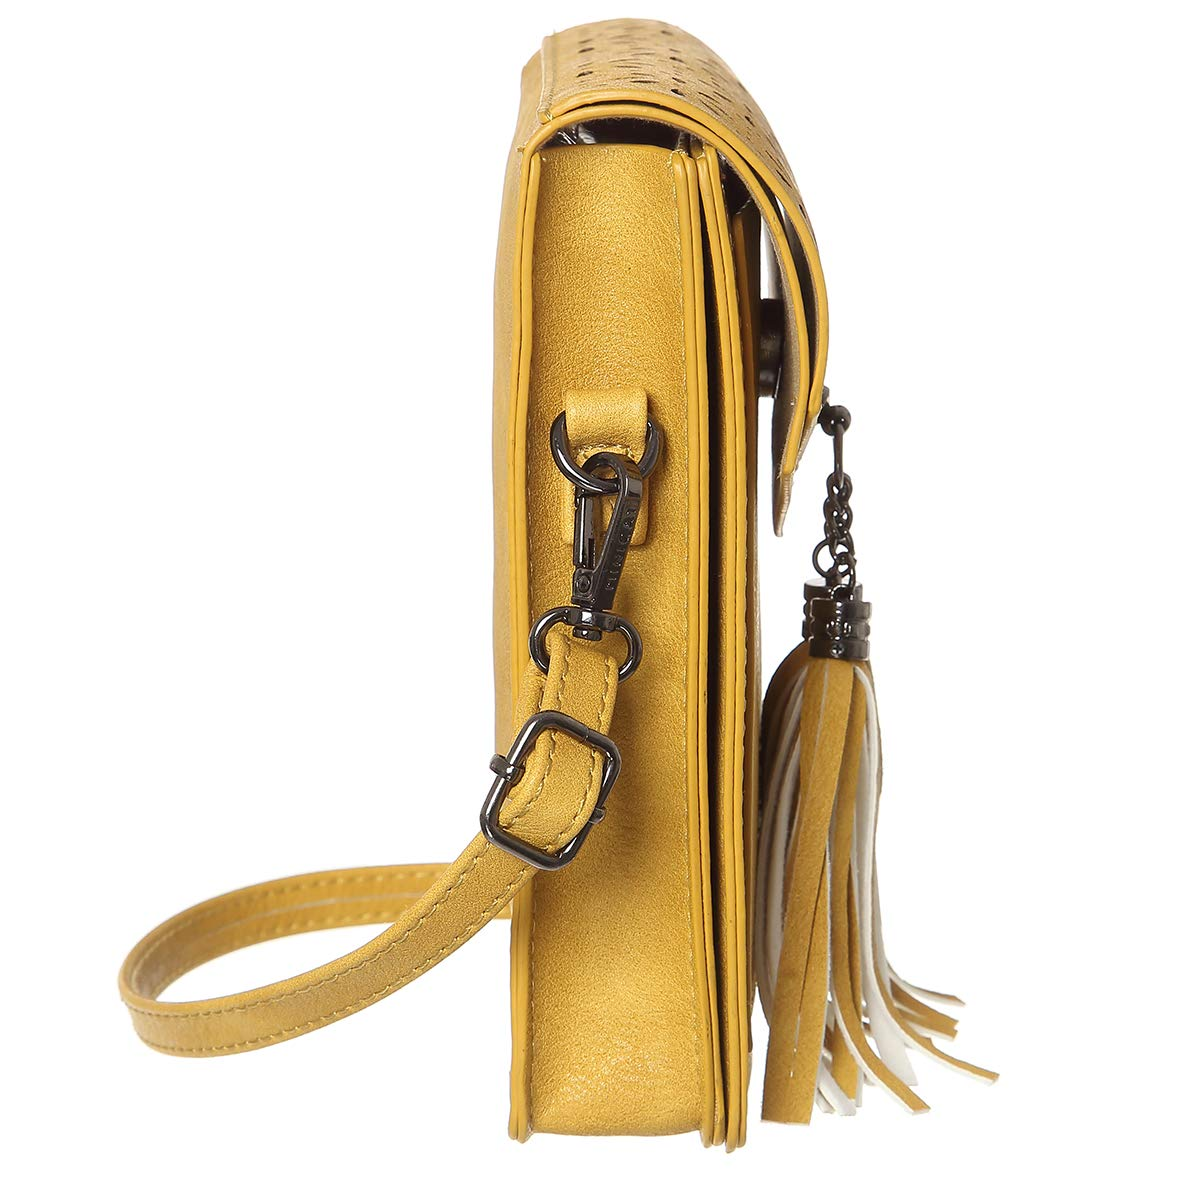 MINICAT Fringe Thicher Pocket Small Crossbody Bags Cell Phone Purse Wallet For Women With Credit Card Slots(Yellow) by MINICAT (Image #3)